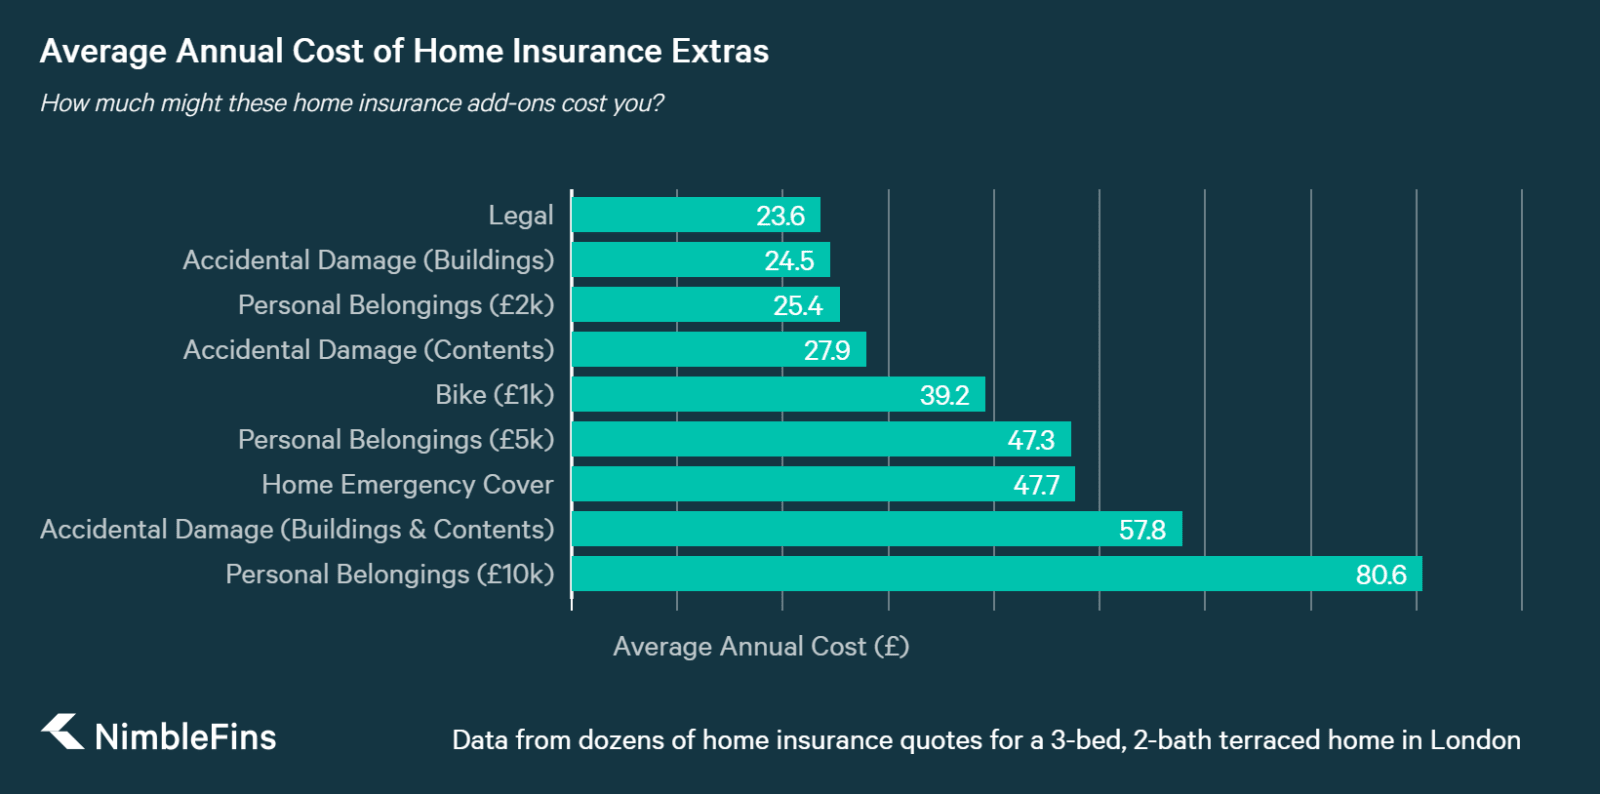 chart showing How Much Home Insurance Extras Might Cost